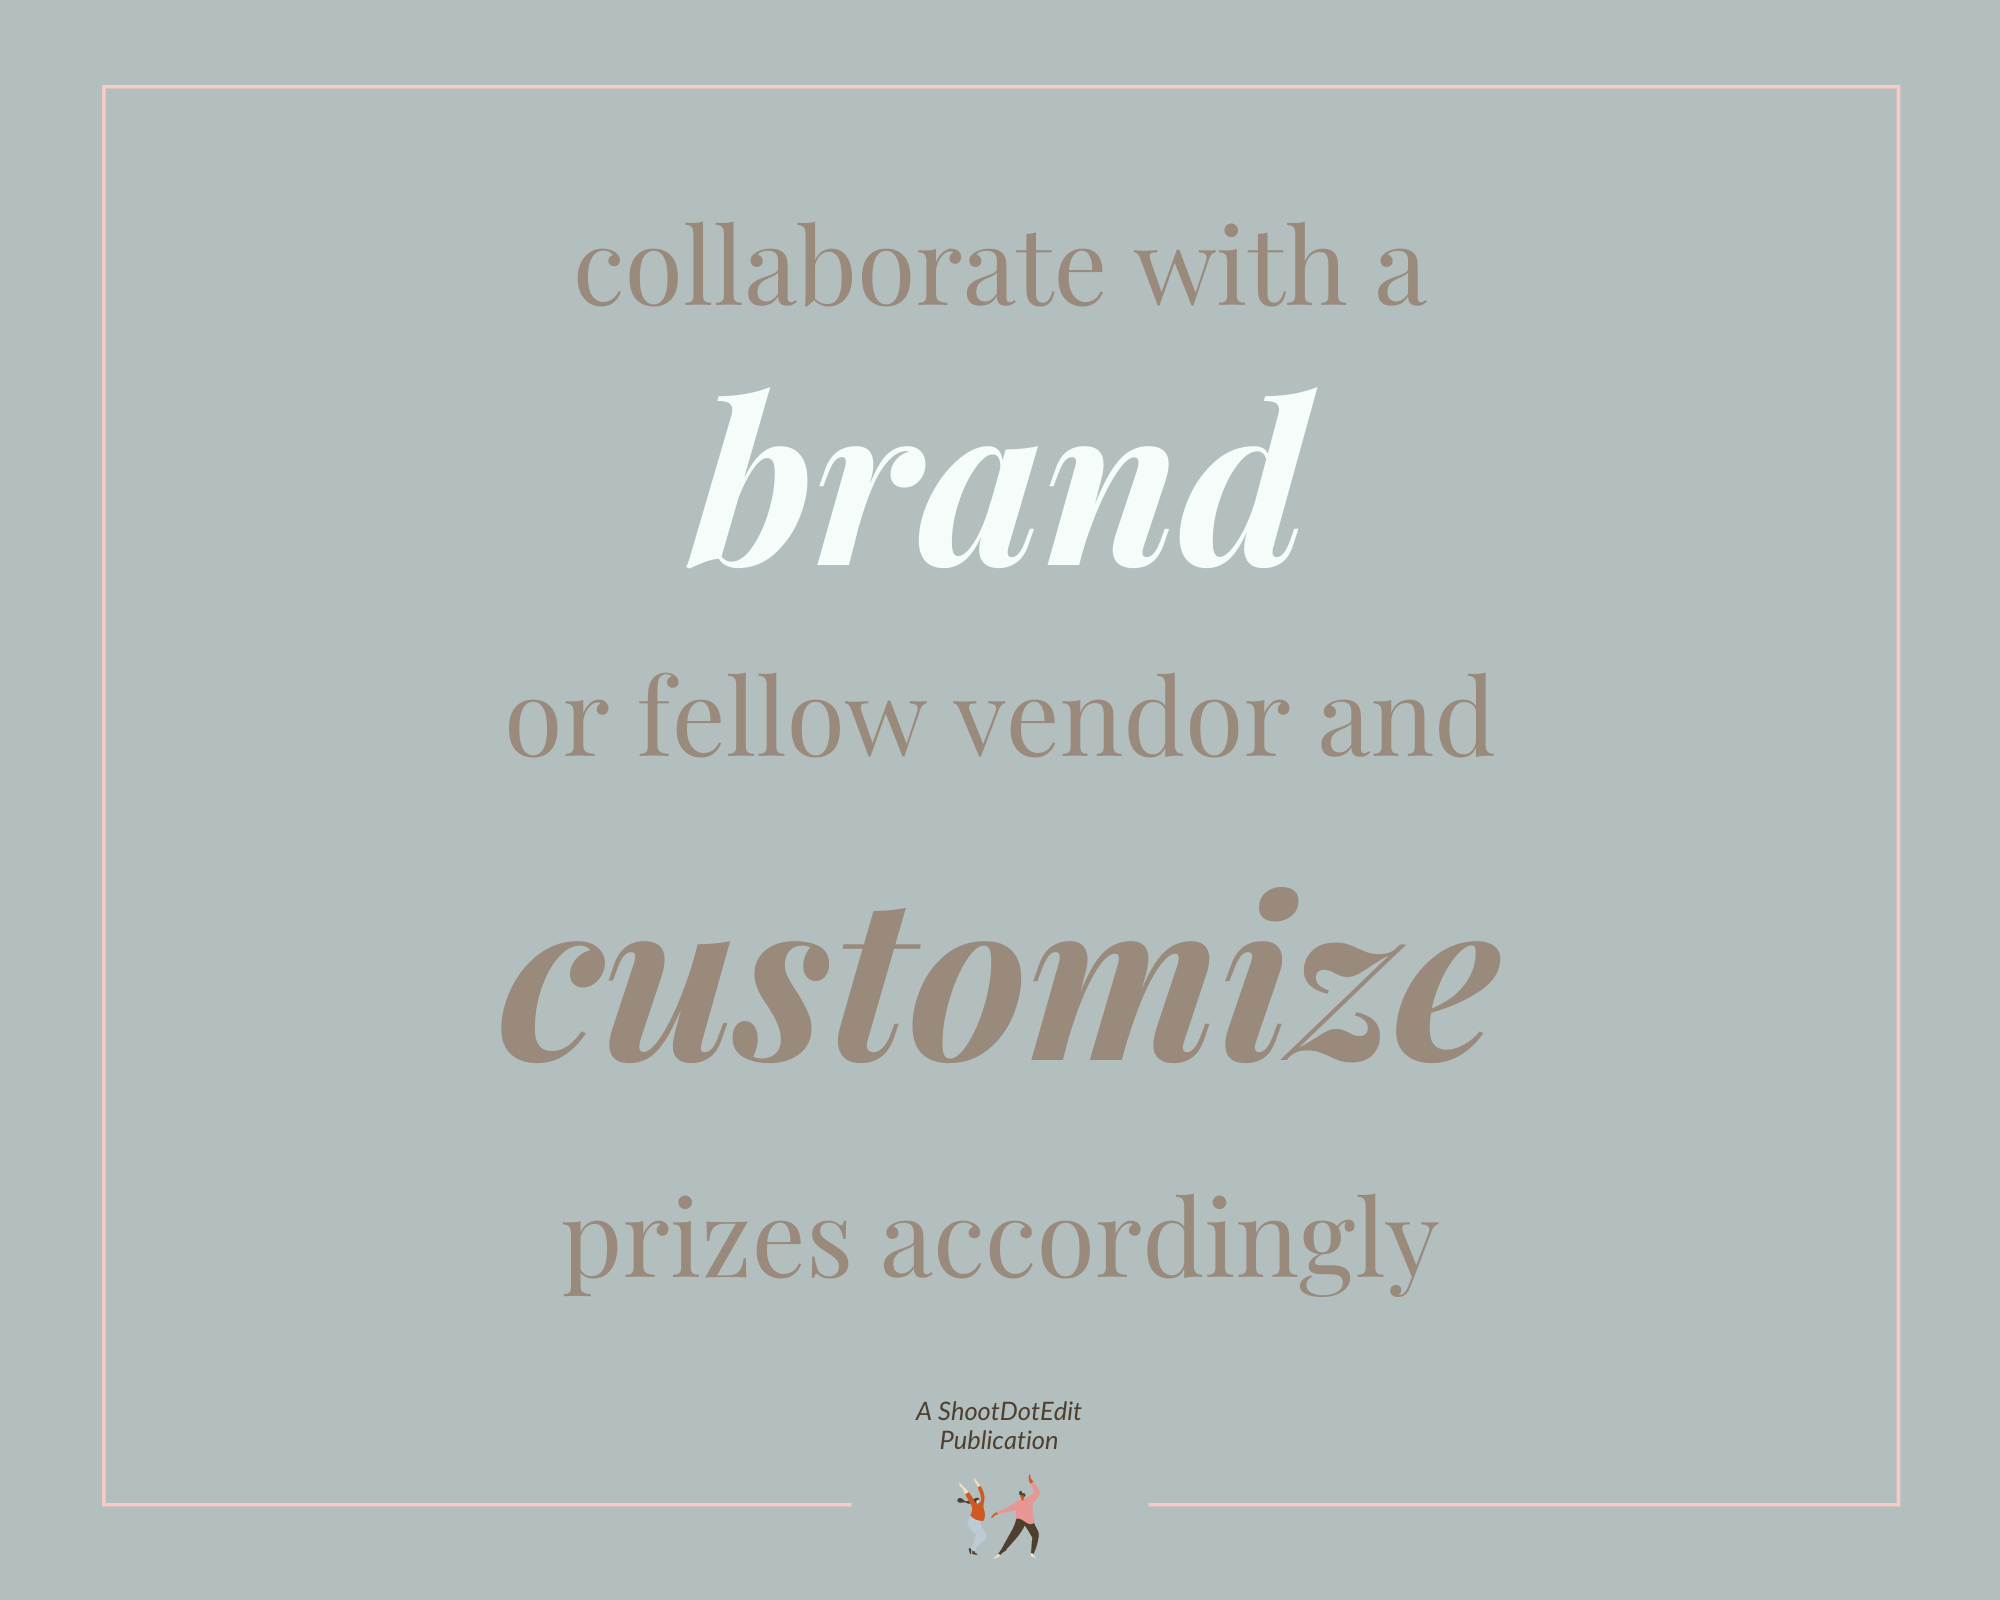 Infographic stating collaborate with a brand or fellow vendor and customize prizes accordingly